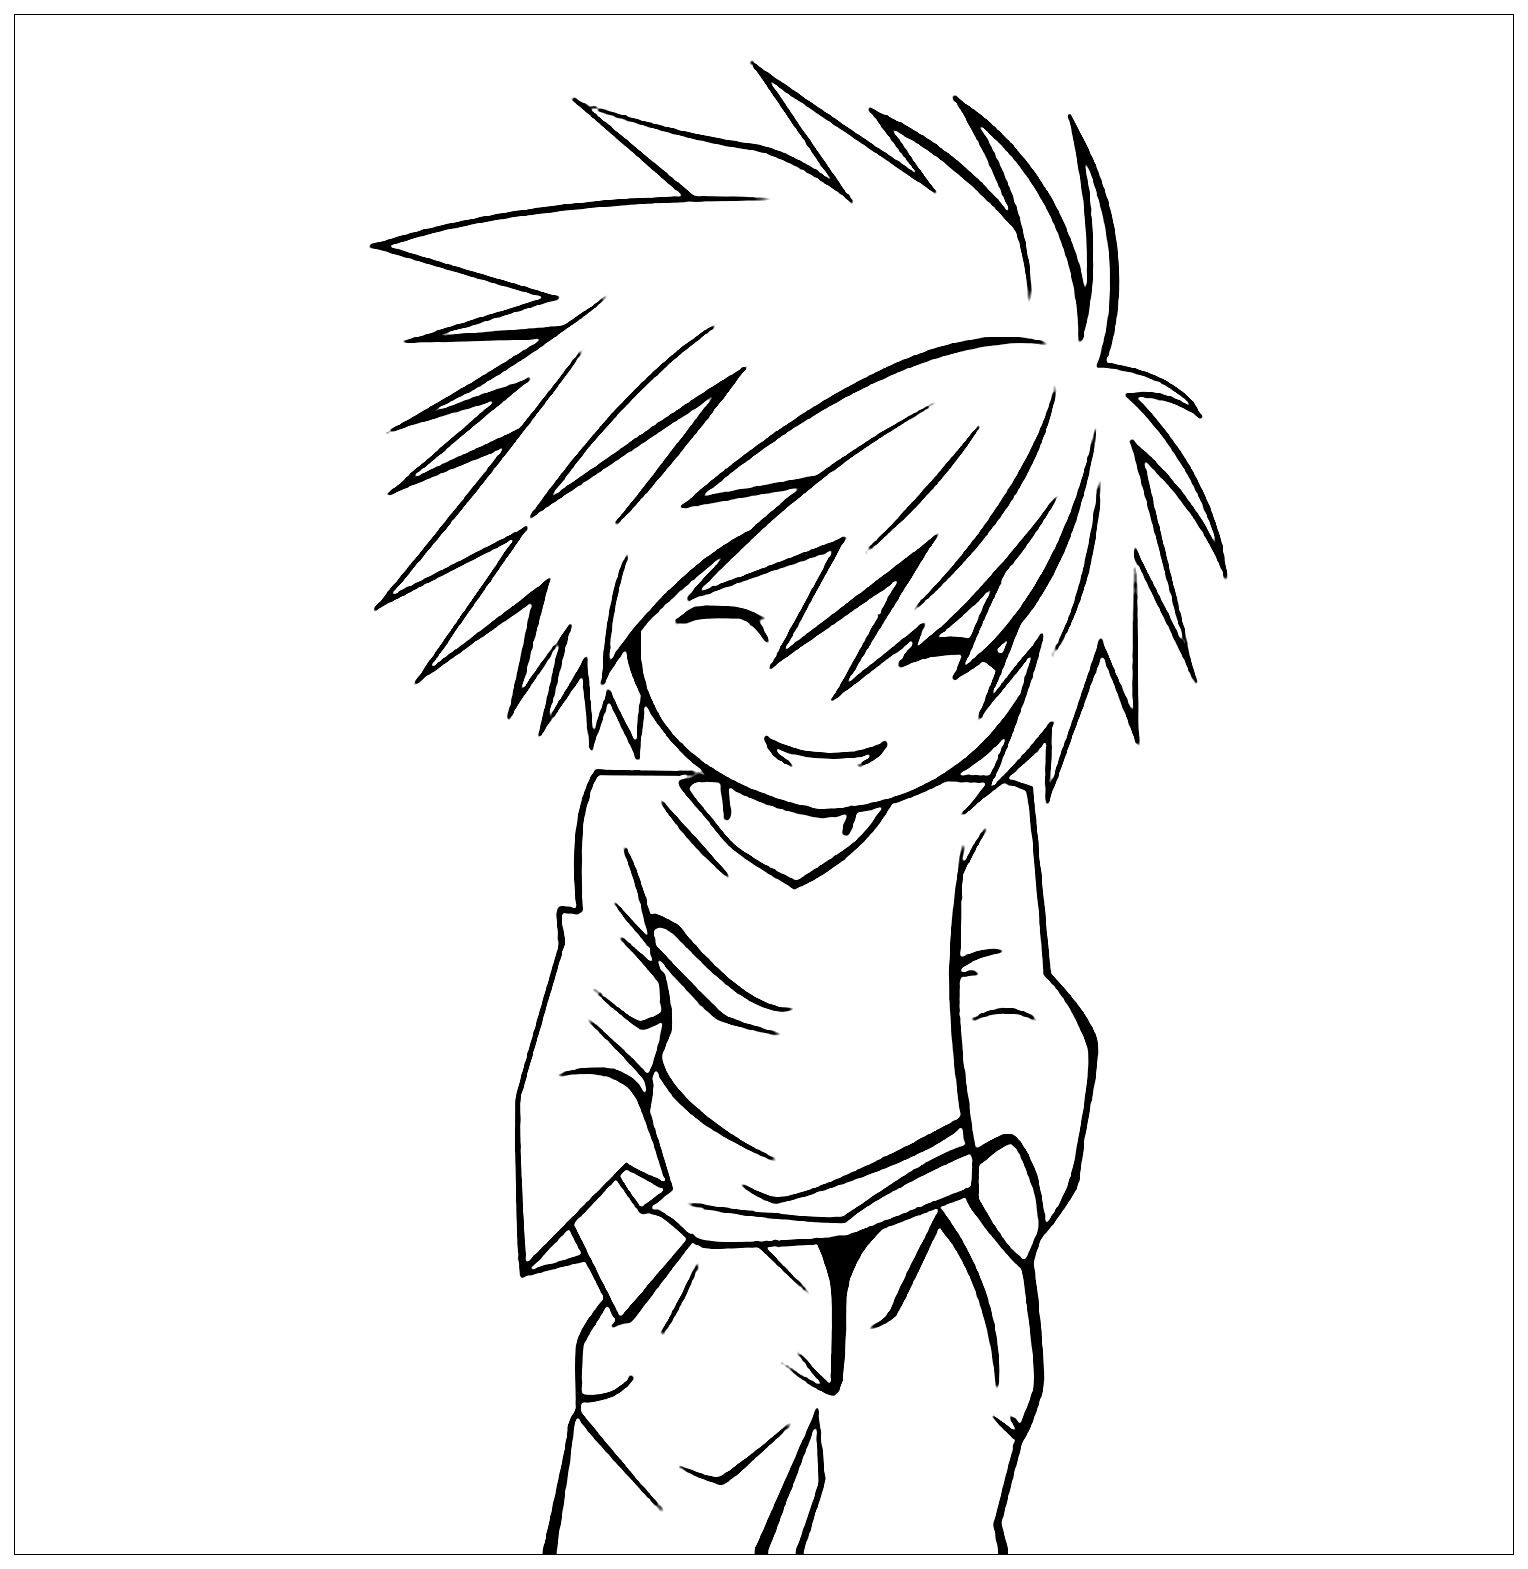 Death note coloring page to print and color